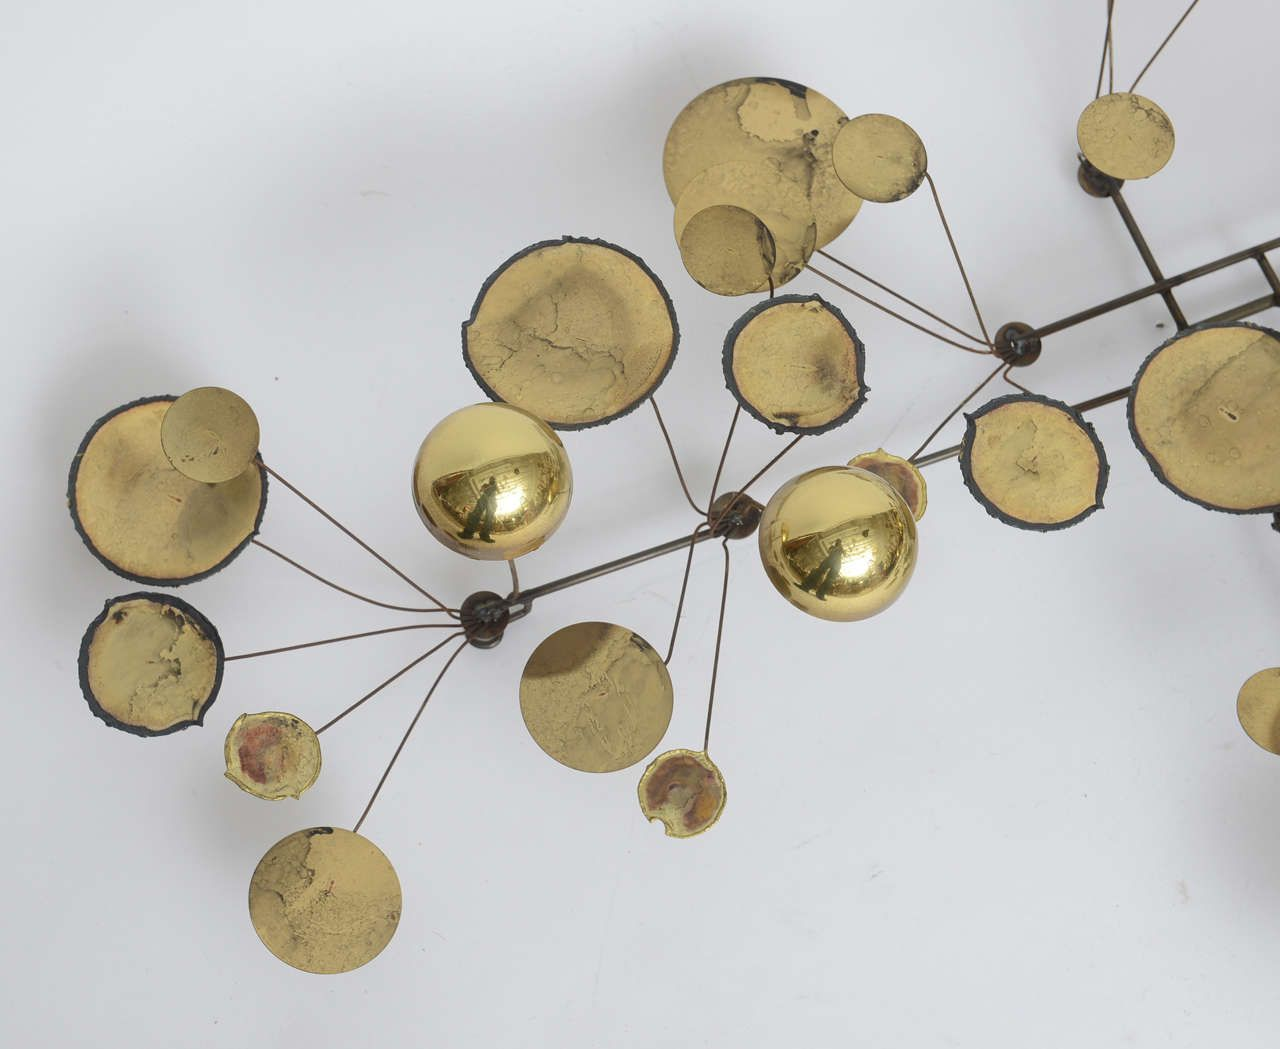 Perfect Brass Raindrops Wall Sculpture By C. Jere, Manufactured By Artisan House